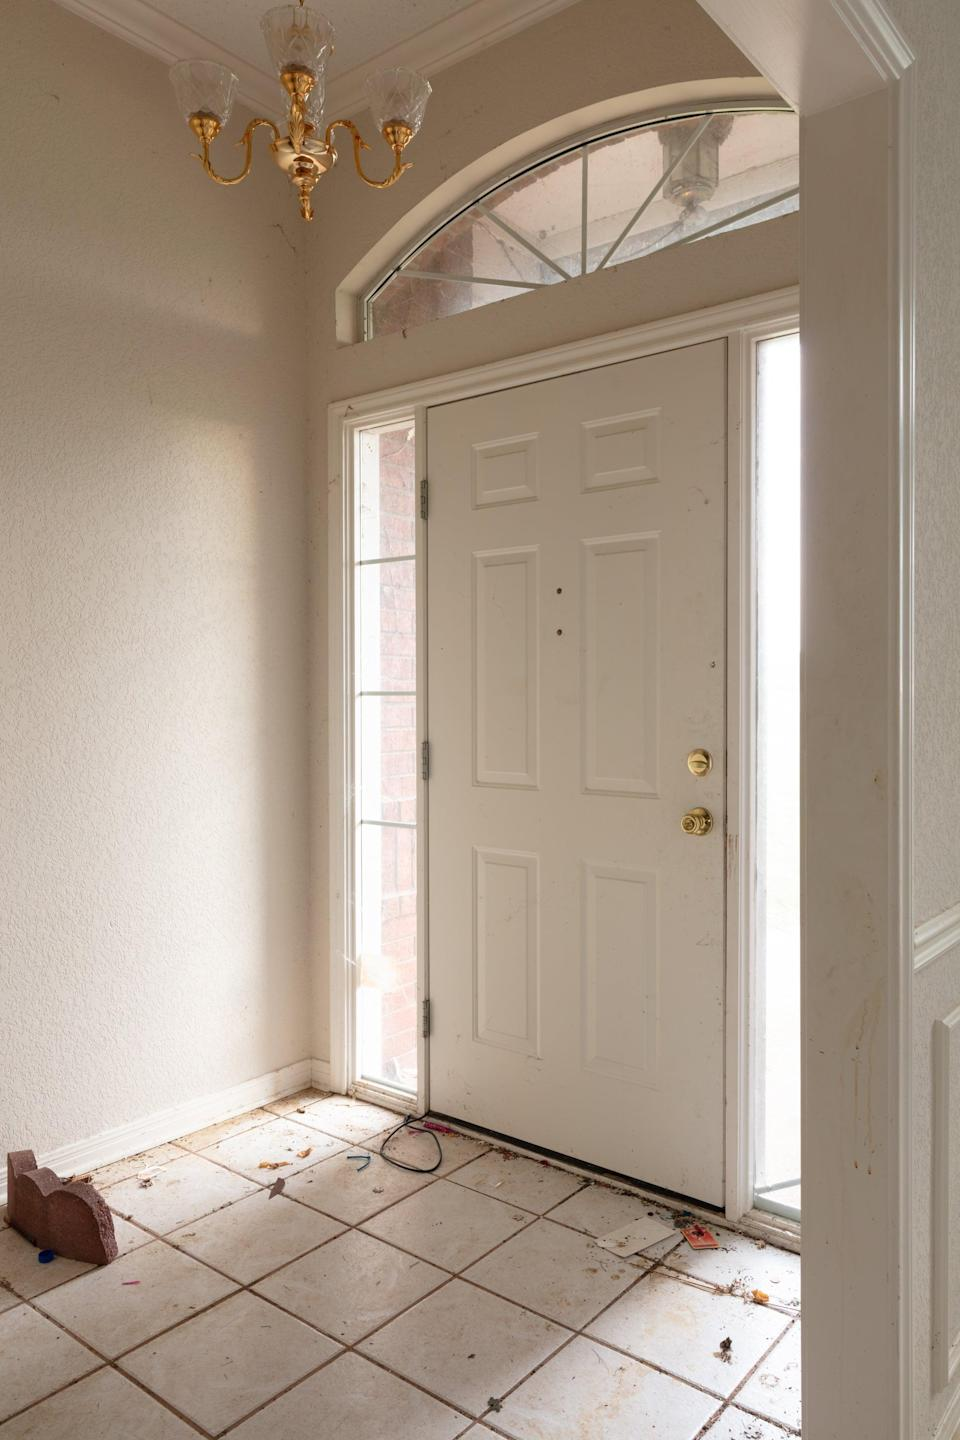 <p>Chip and Joanna loved the window-framed door, but decided the entire entryway still needed some major updates.</p>